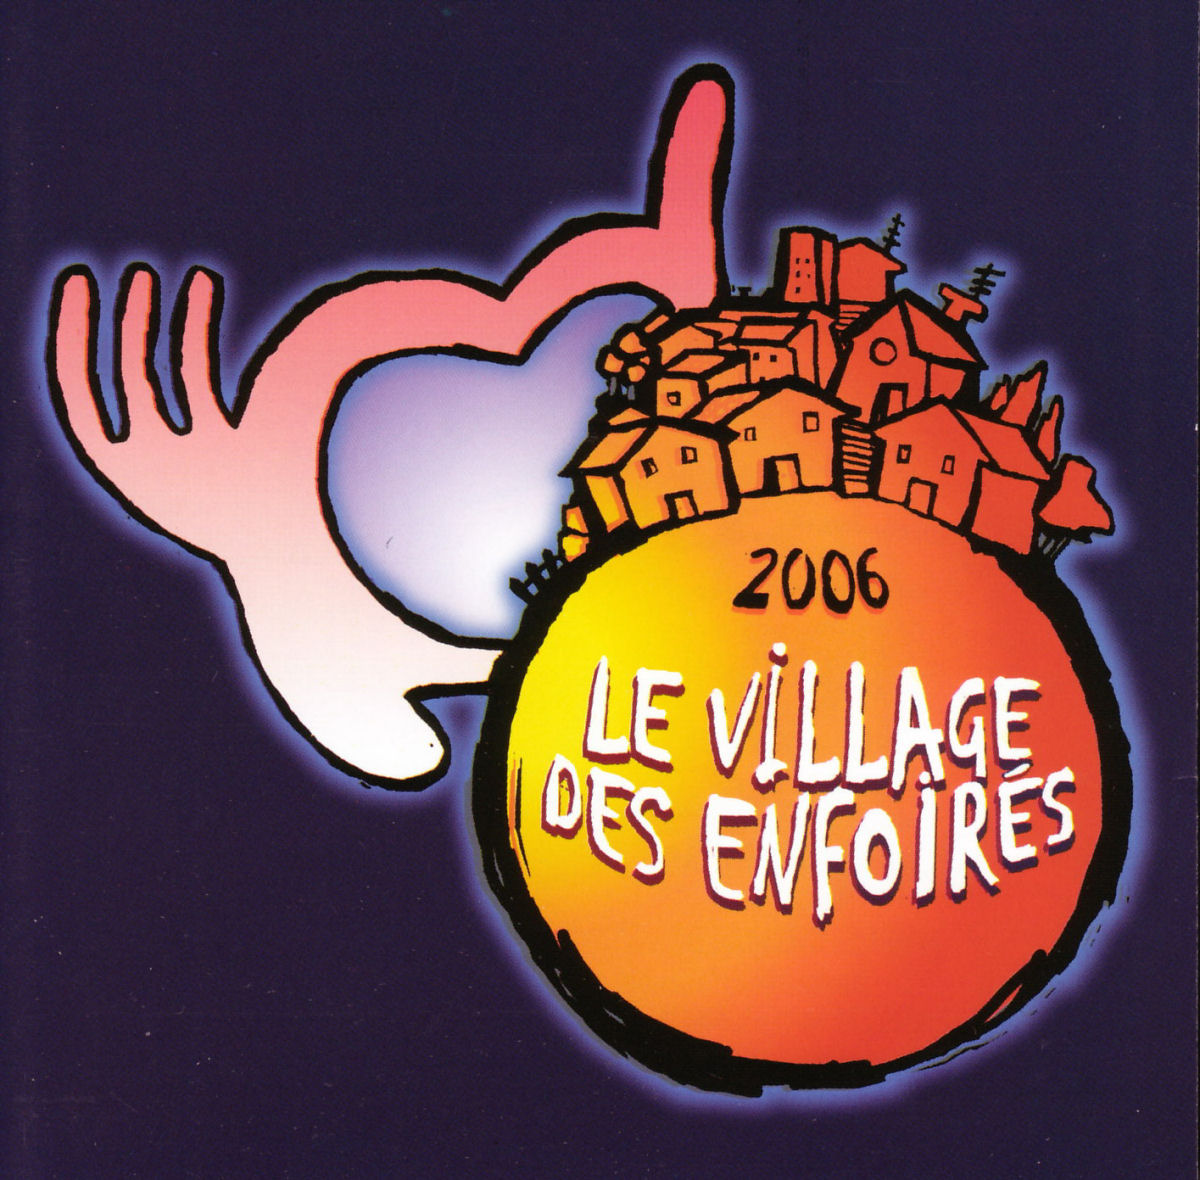 2006_le-village-des-enfoires